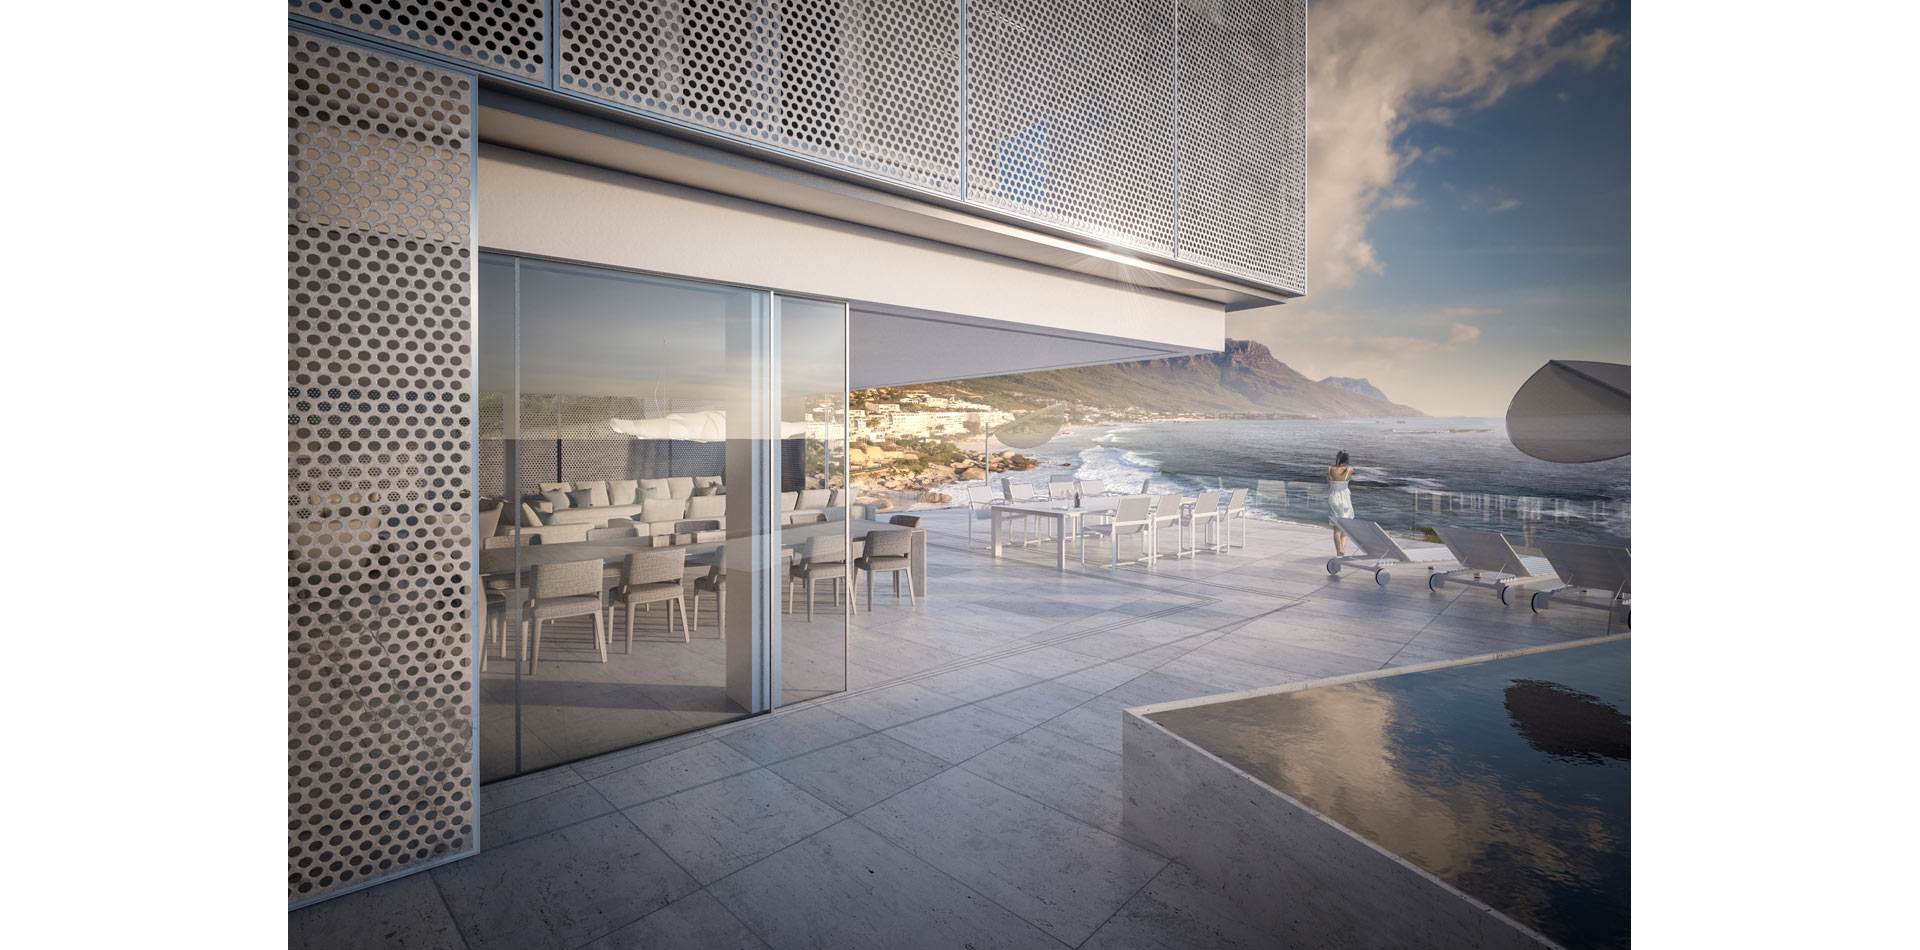 Terri Brown 3D visualisation Vray 3DS Max Cape Town Coast Luxury Modern Marble Pool Patio View